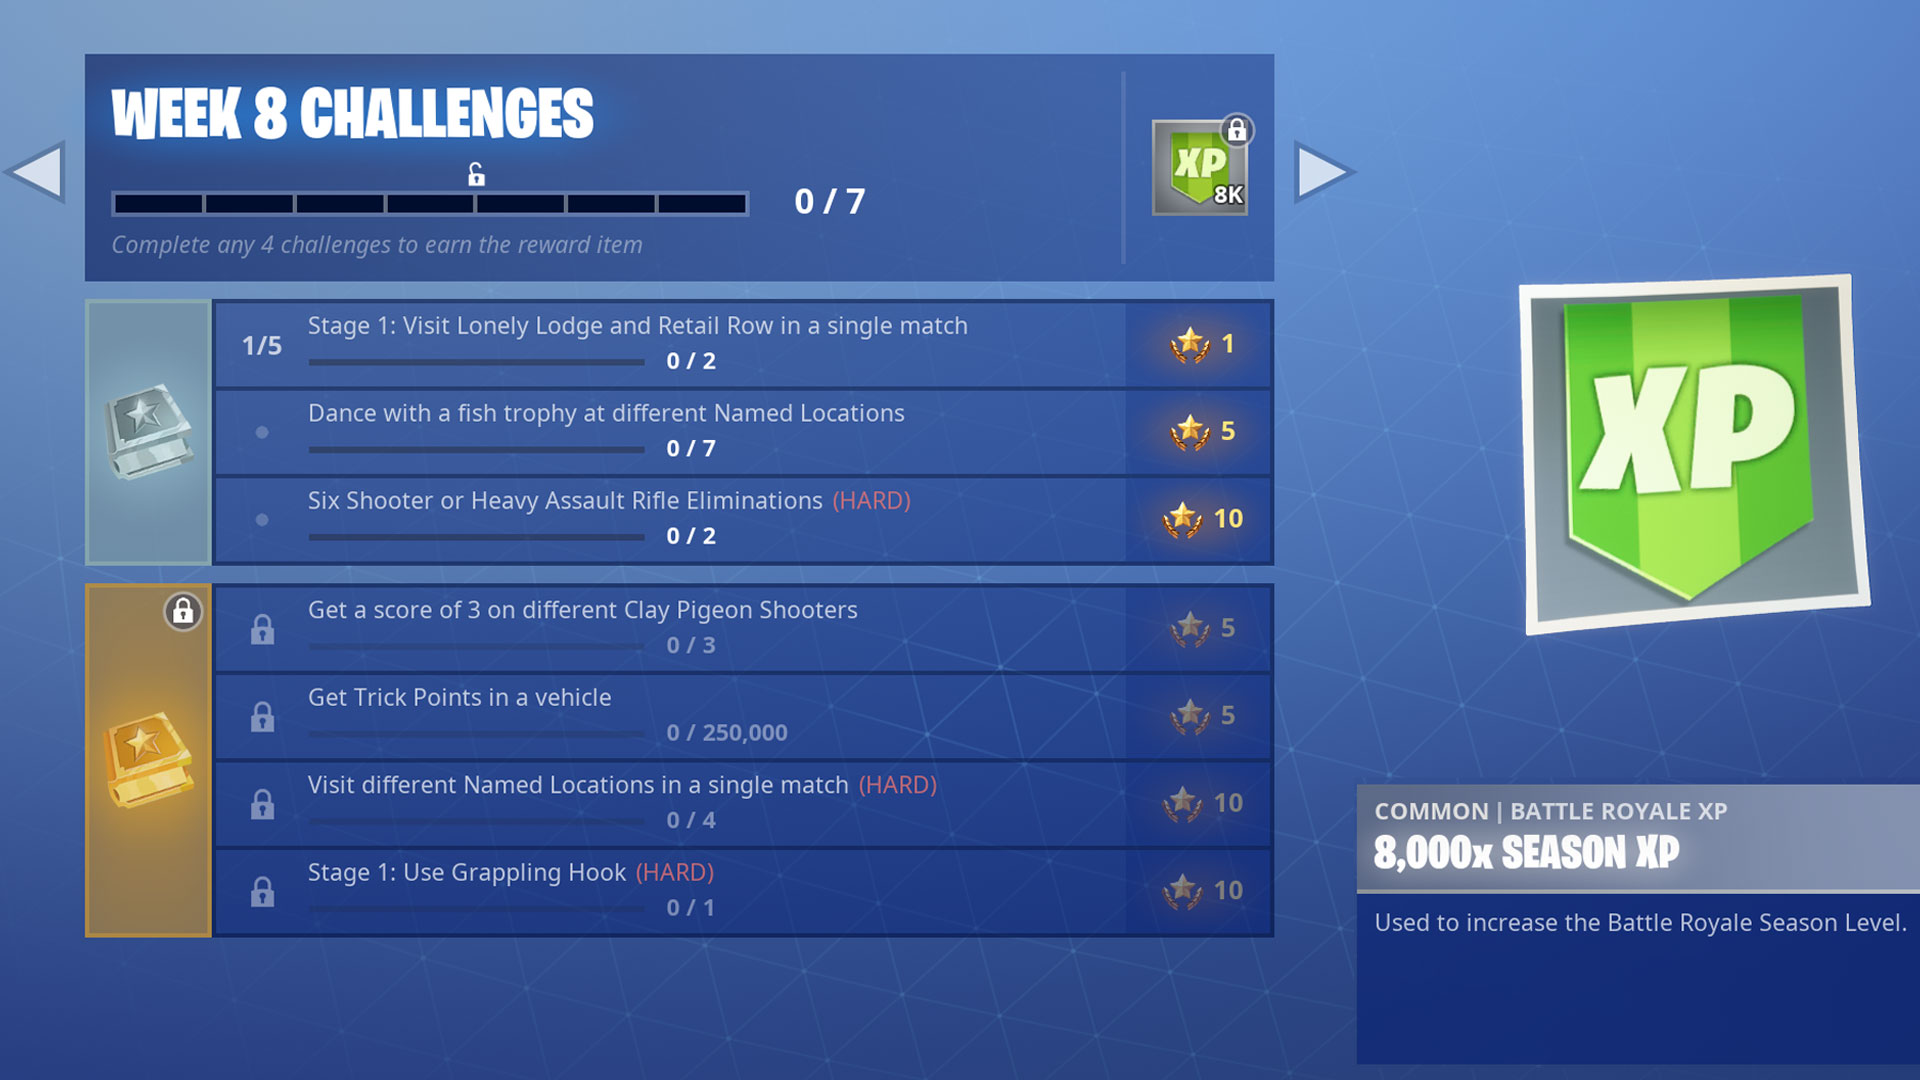 Week 8 Chllenges Fortnite